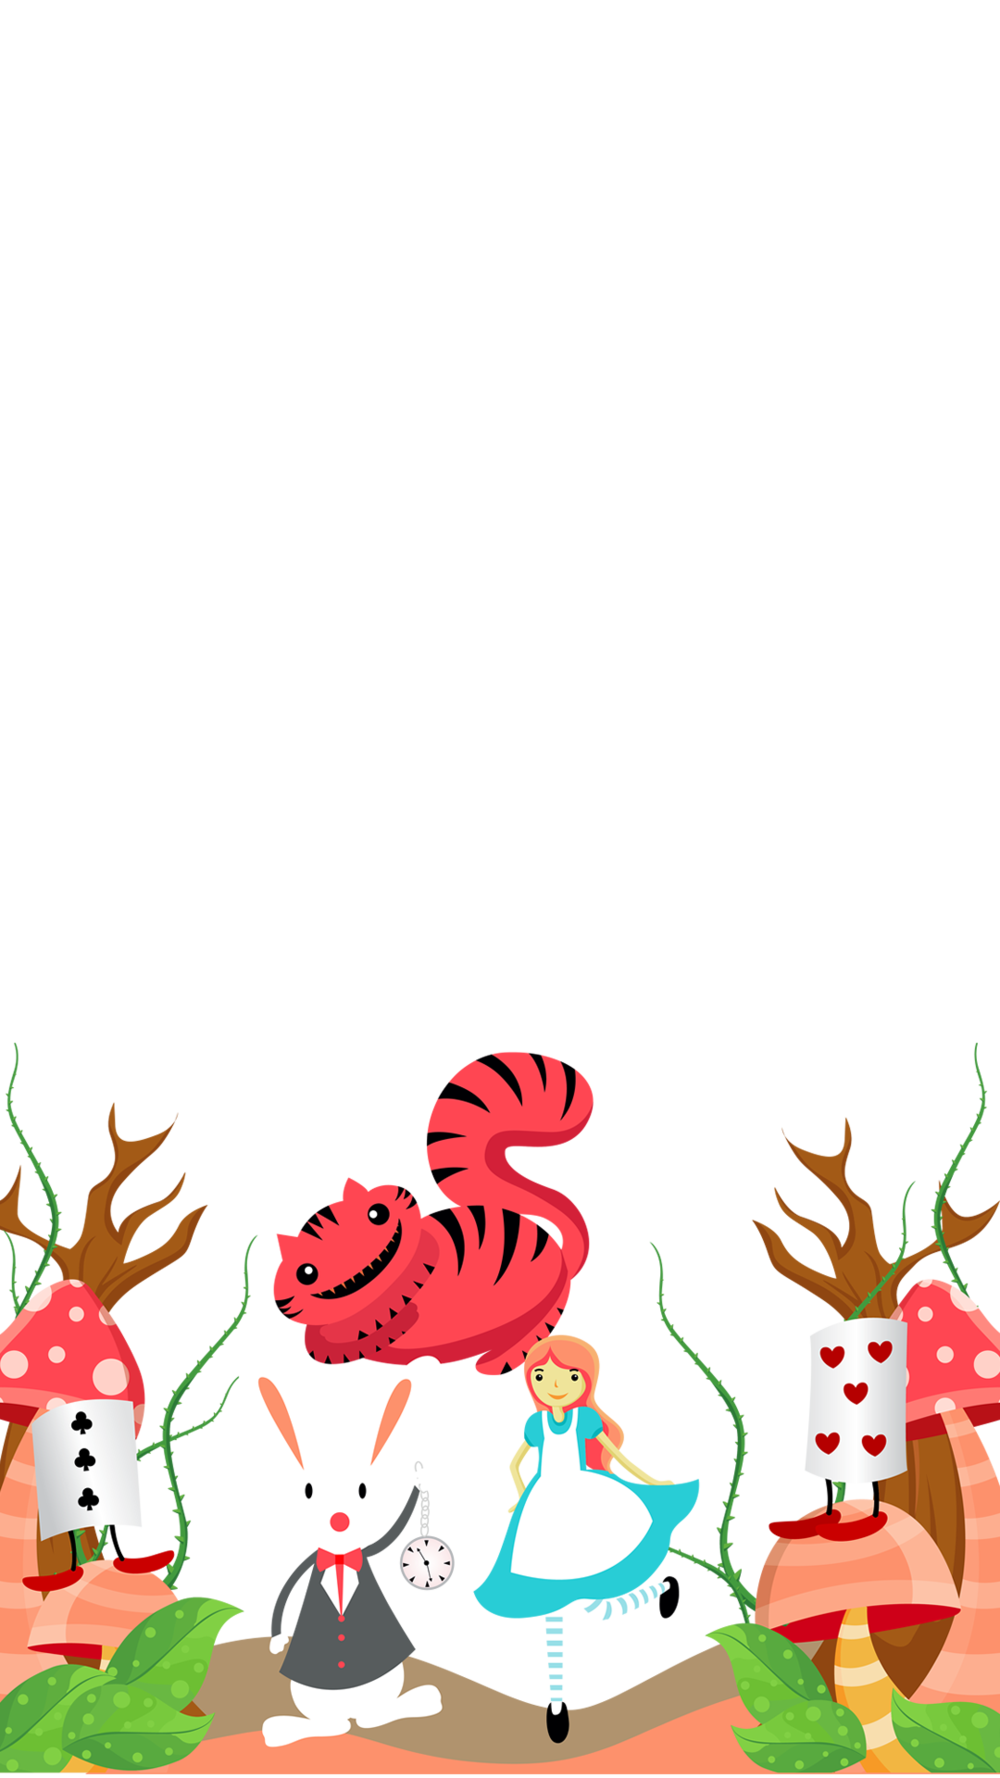 Alice in Wonderland Geofilter.png